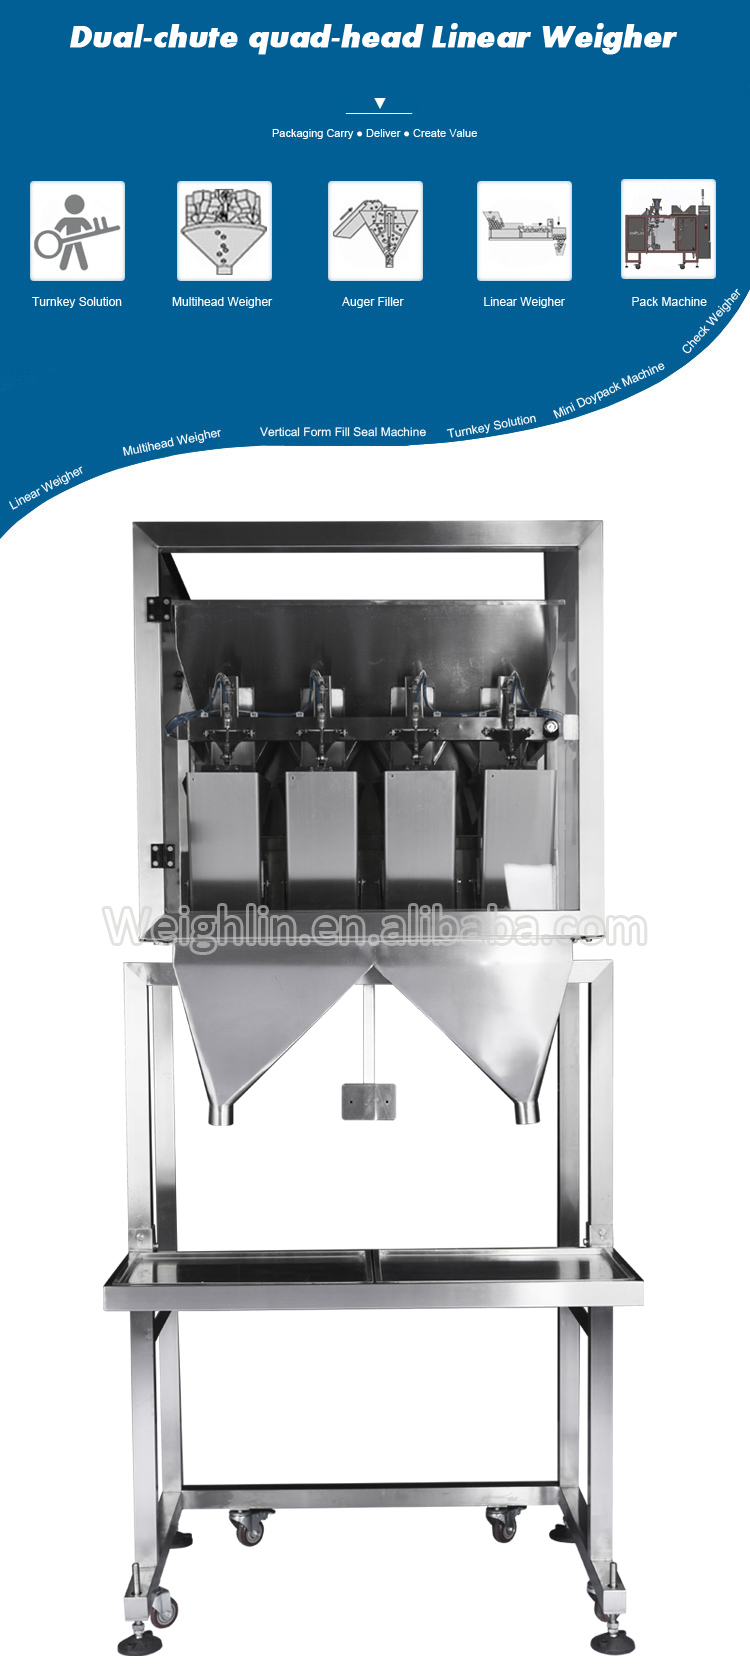 Modular packaging machine with innovative software 4heads two chutes linear weigher packing flour powder